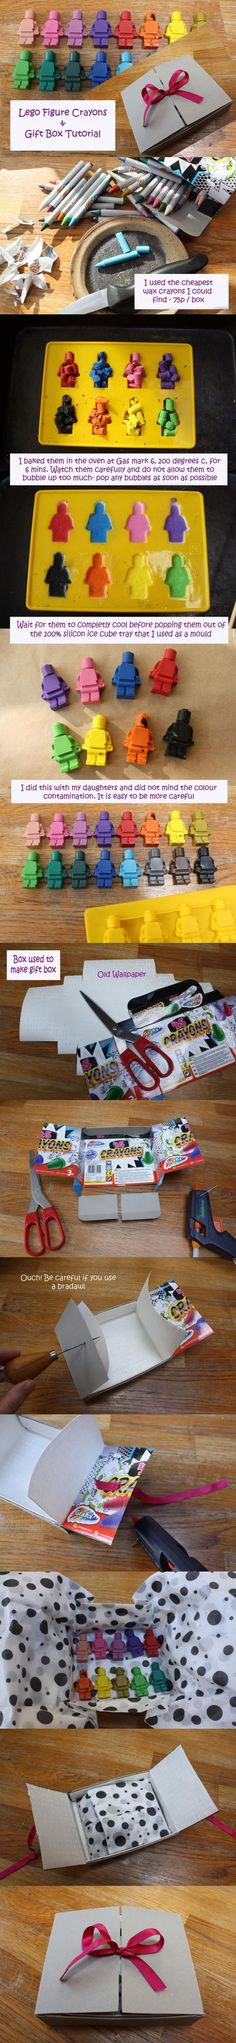 Make It: Lego Man Crayons - Tutorial #kids by Divonsir Borges...great idea